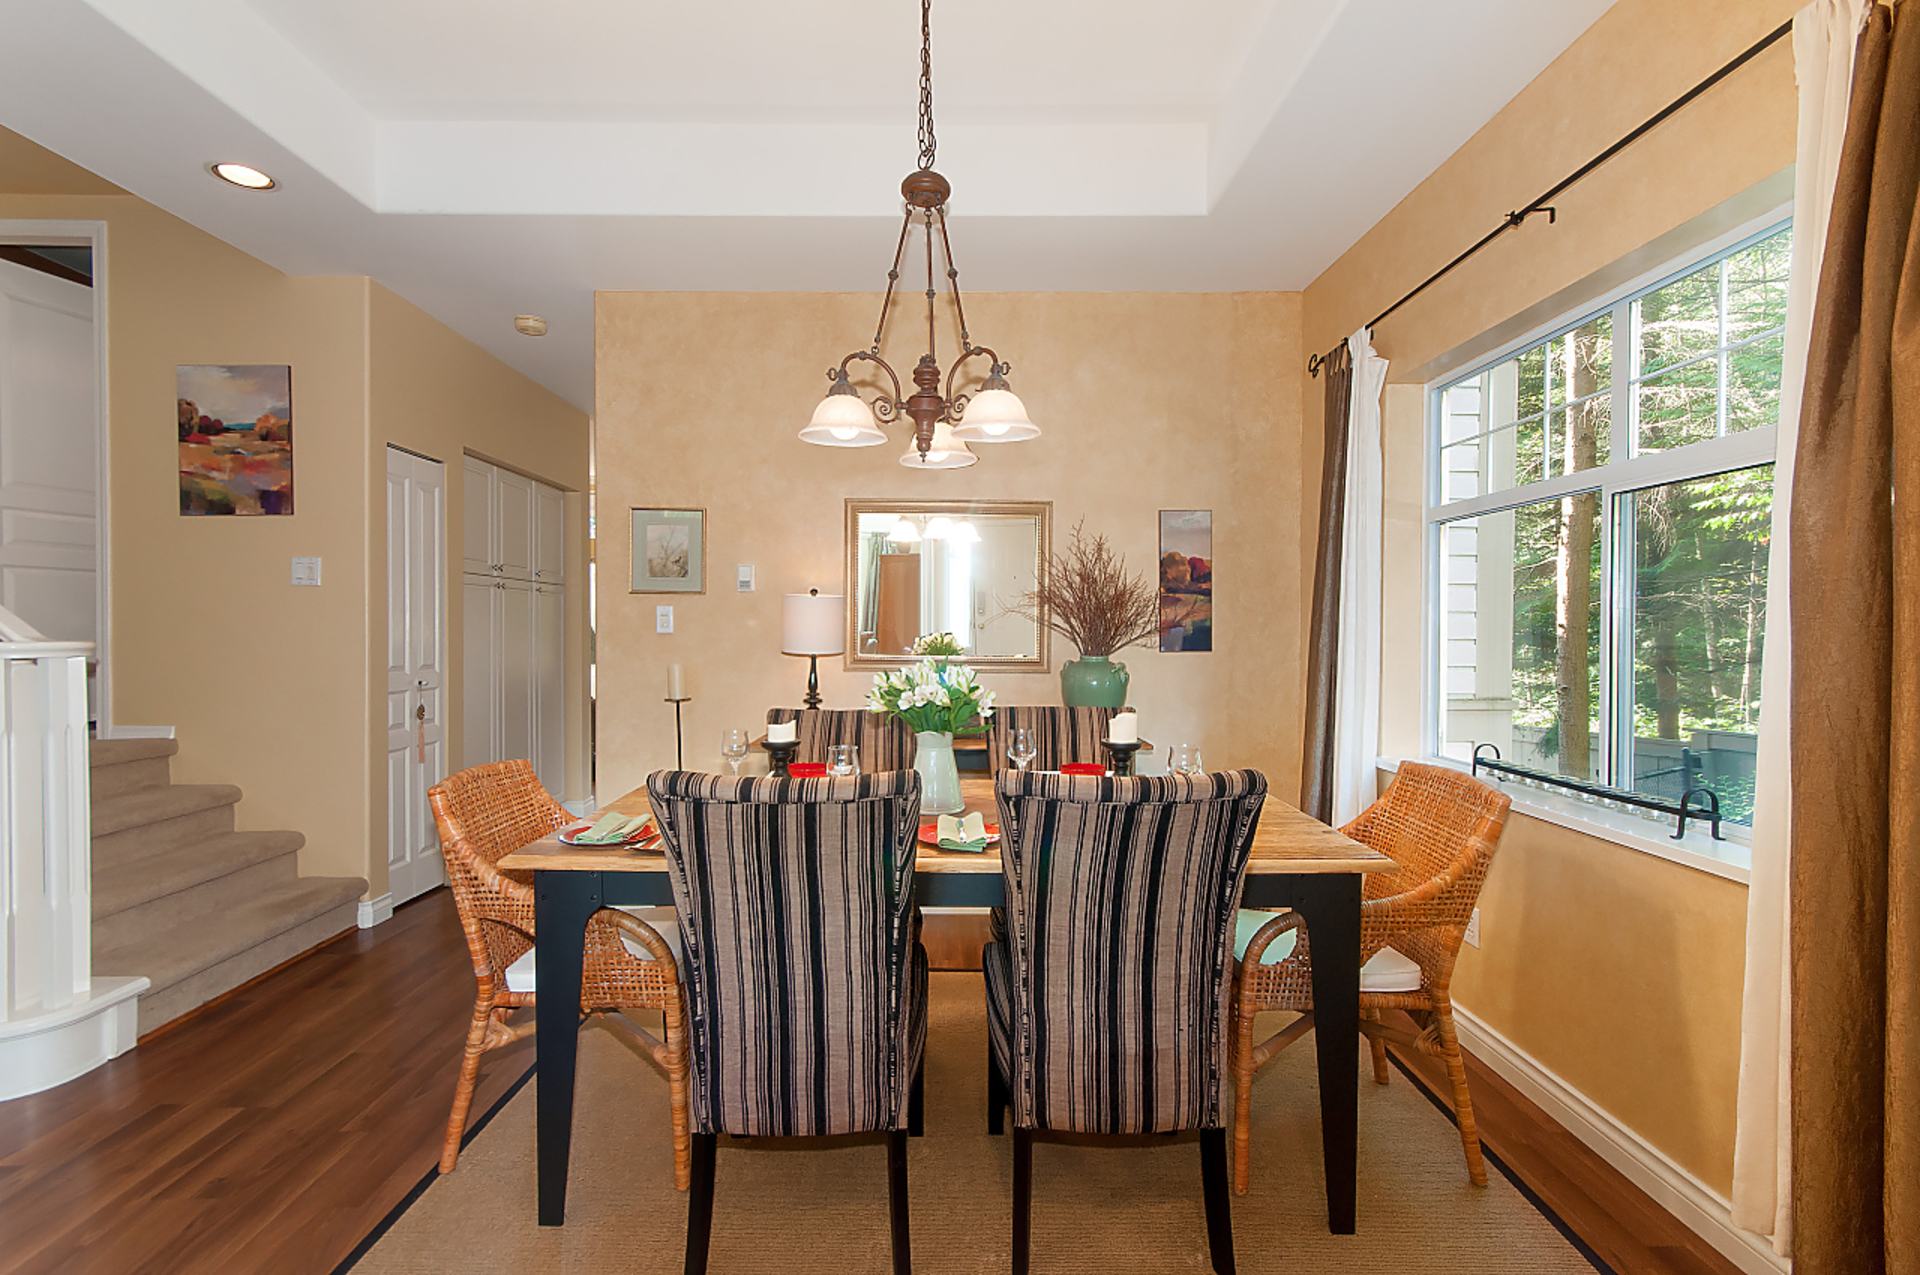 017 at 20 - 1 Aspenwood Drive, Heritage Woods PM, Port Moody